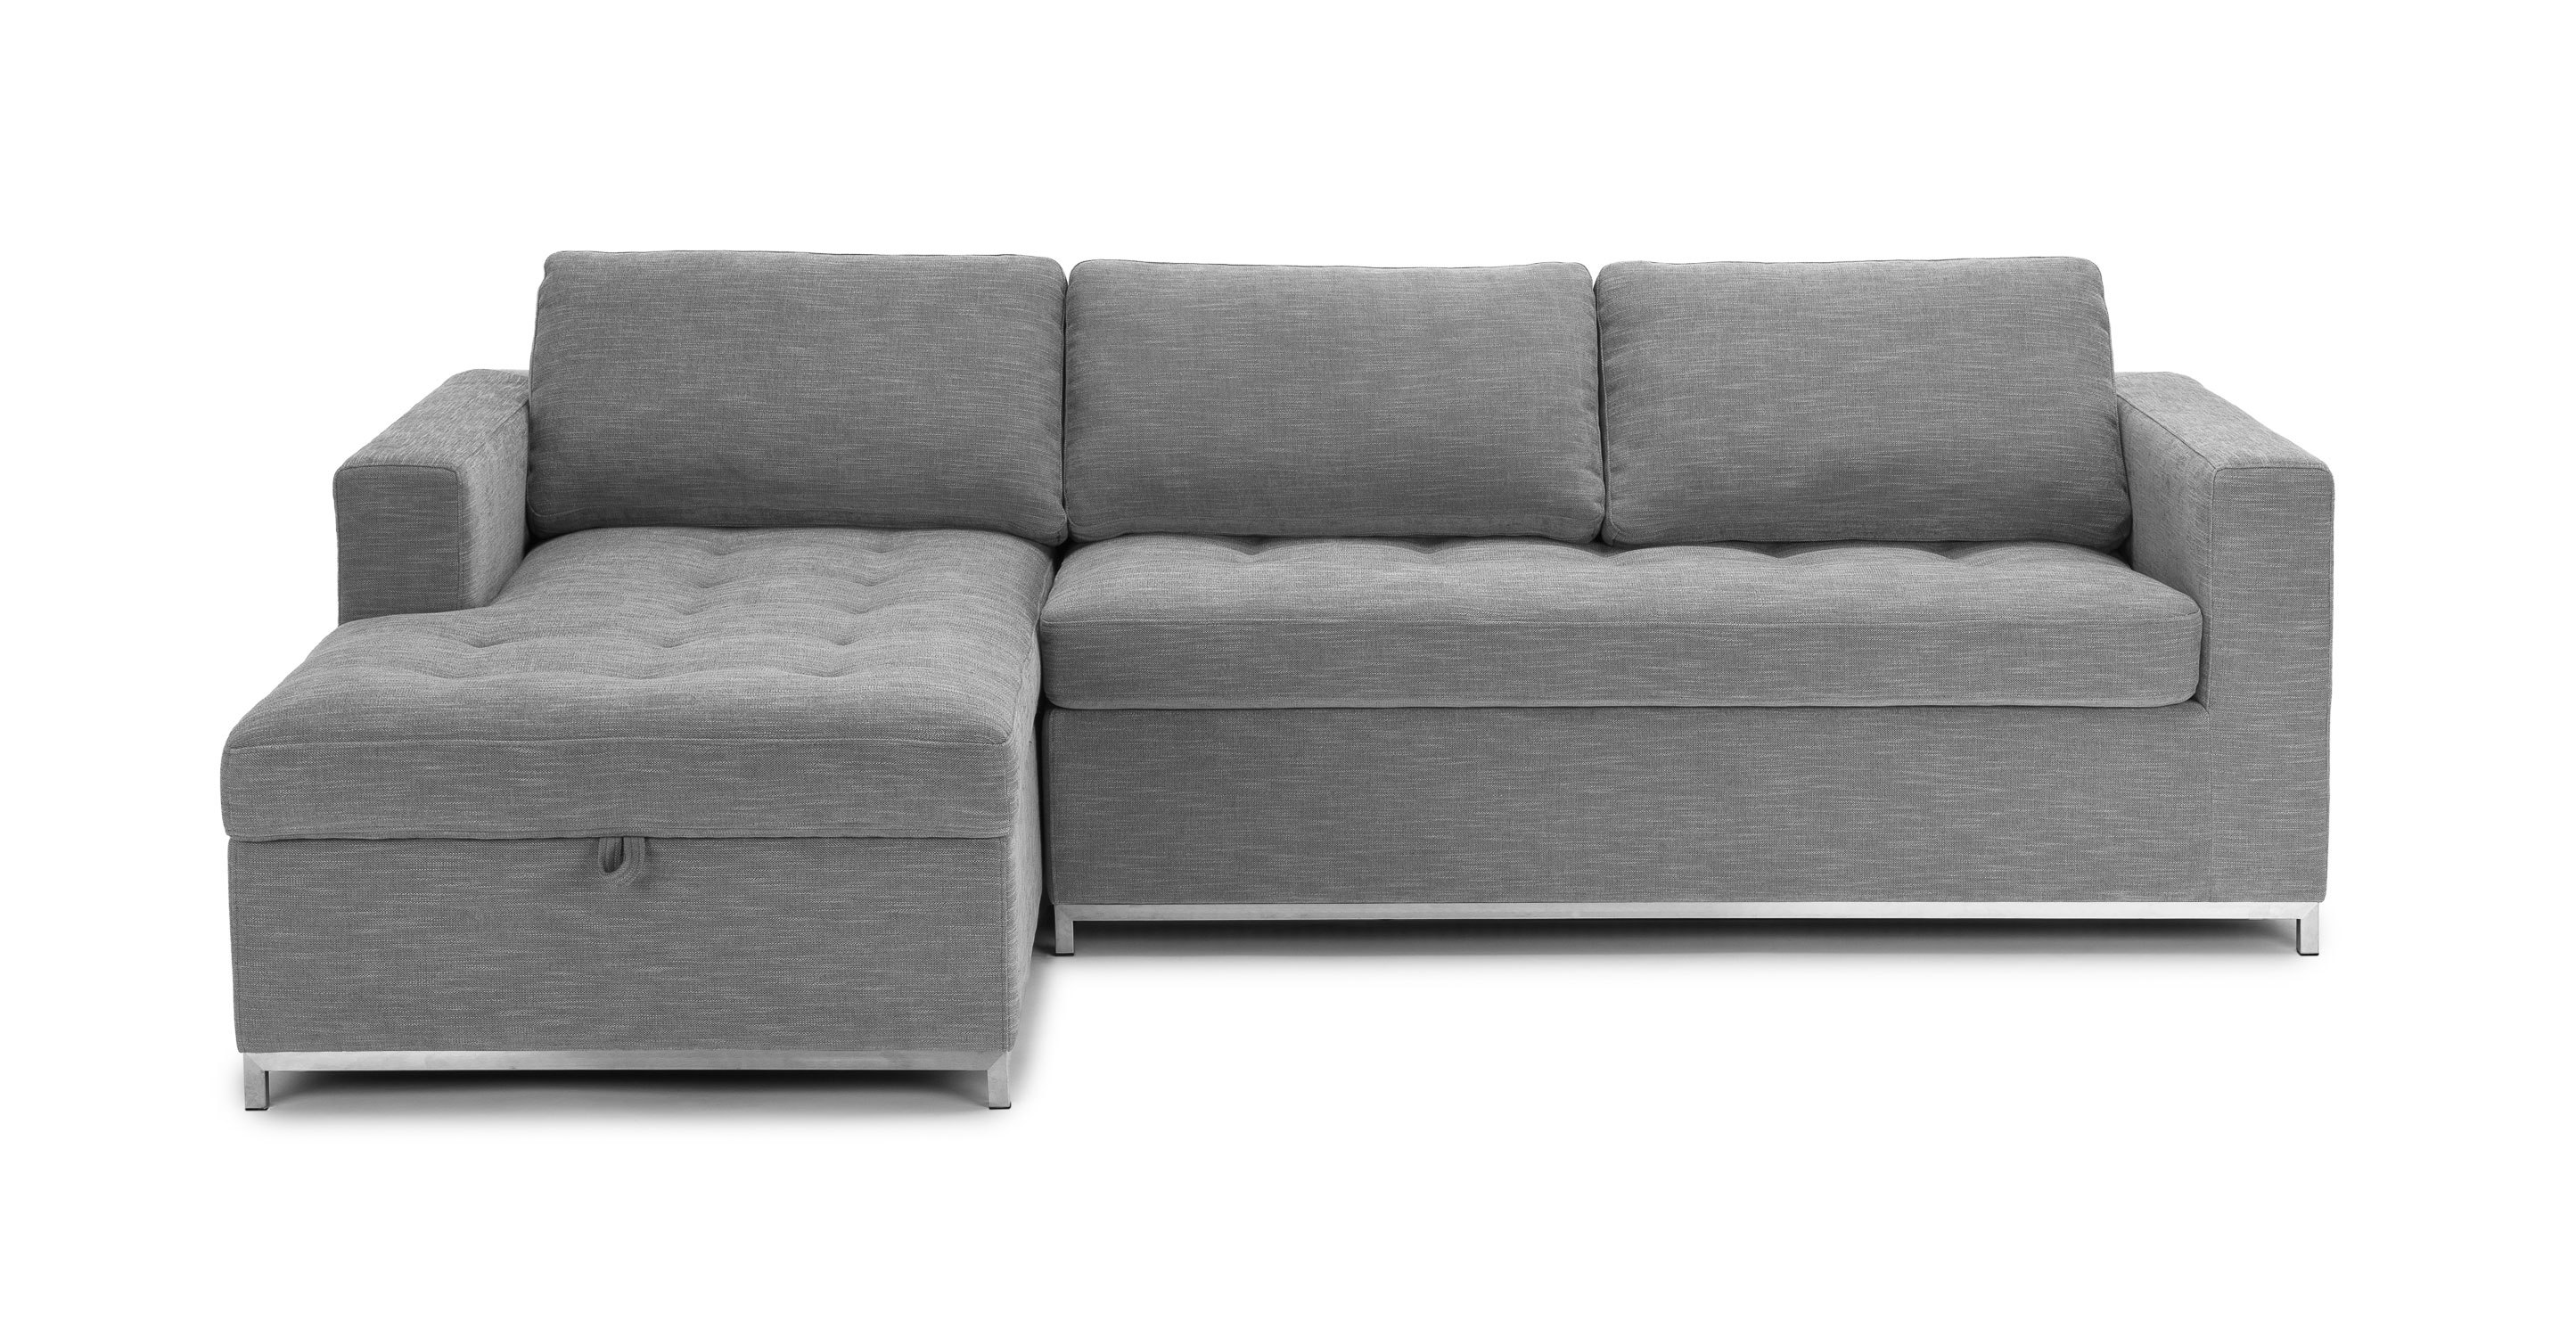 soma dawn gray left sofa bed - sectionals - article | modern, mid-century OOPPTVN